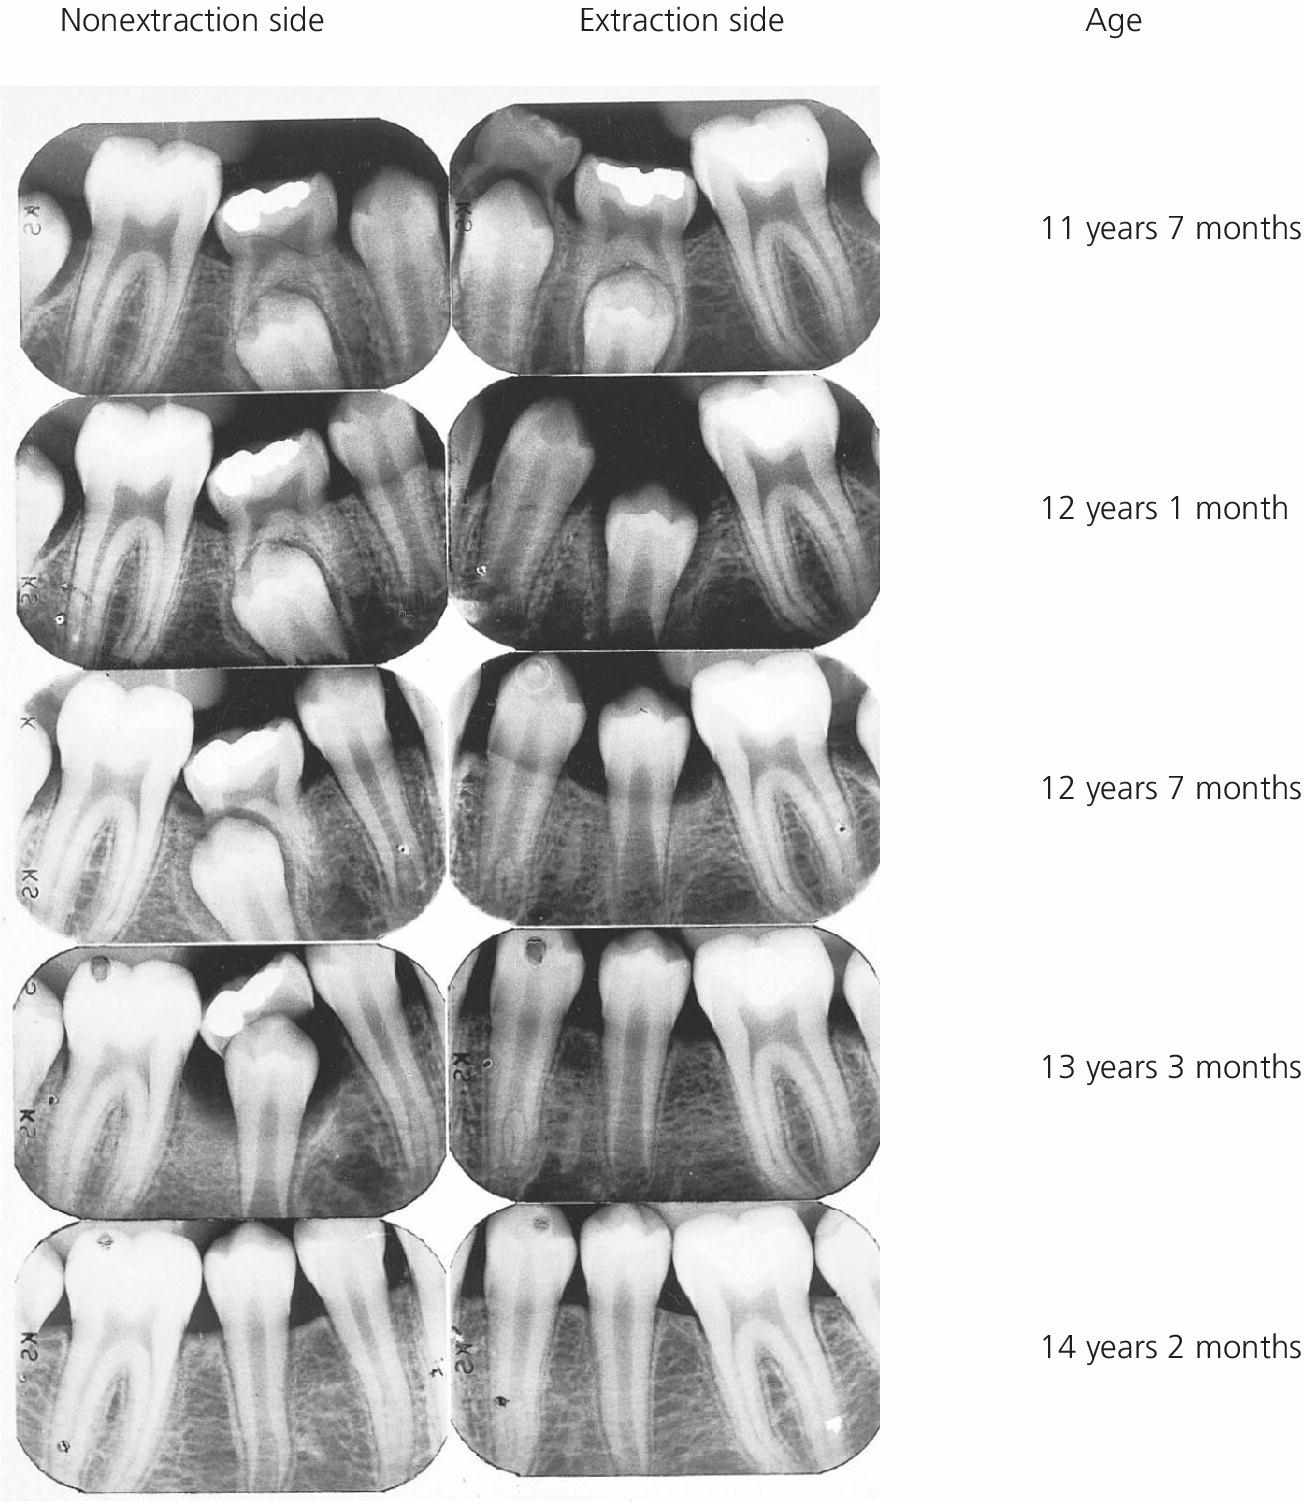 Radiographs of infraoclusion of primary molars of a boy from 11 years 7 months to 14 years 2 months of age displaying nonextraction (left) and extraction sides (right).